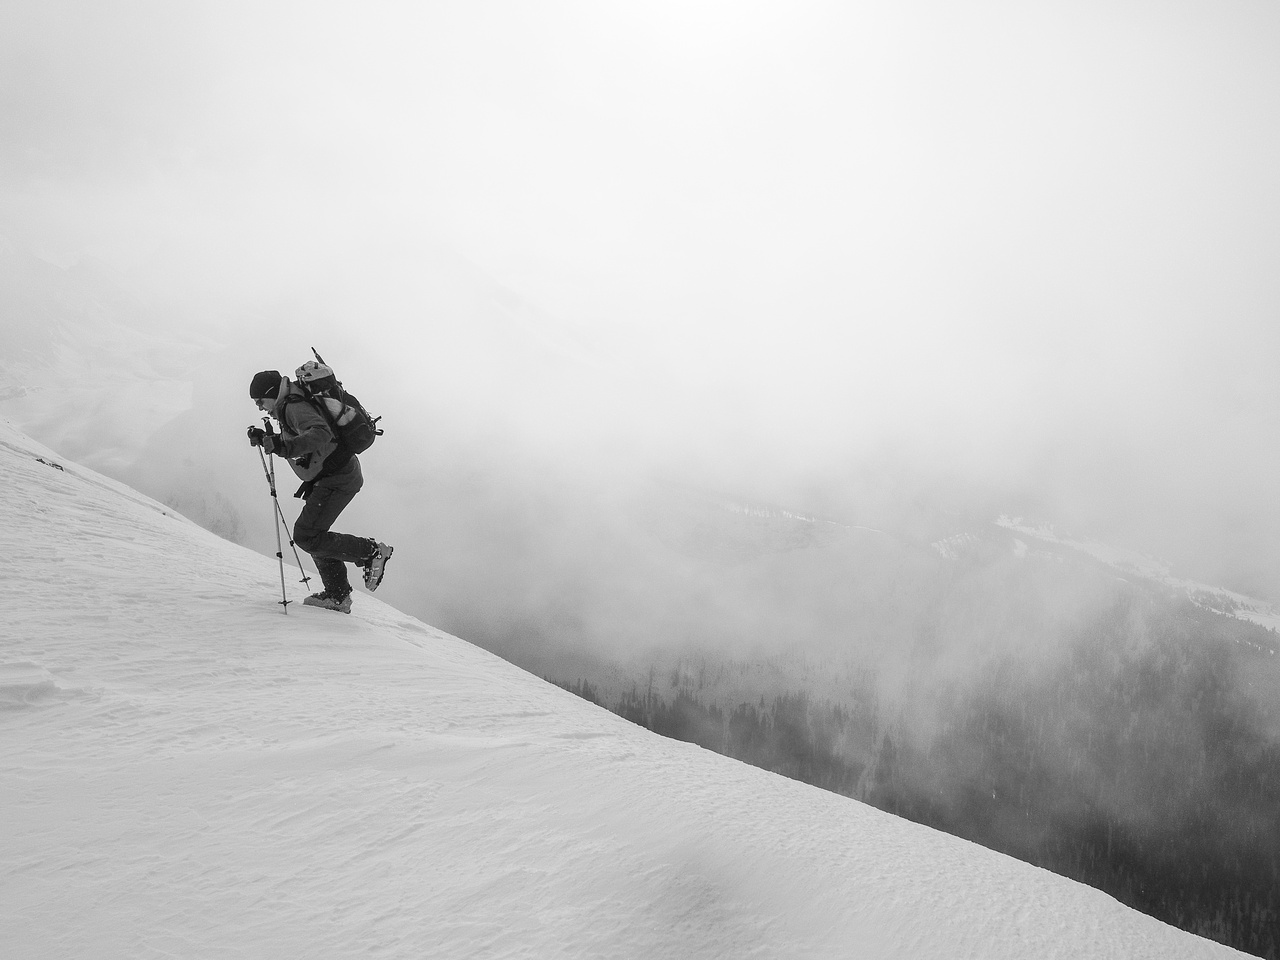 Wietse comes up a bump in the ridge as we're enveloped in clouds.